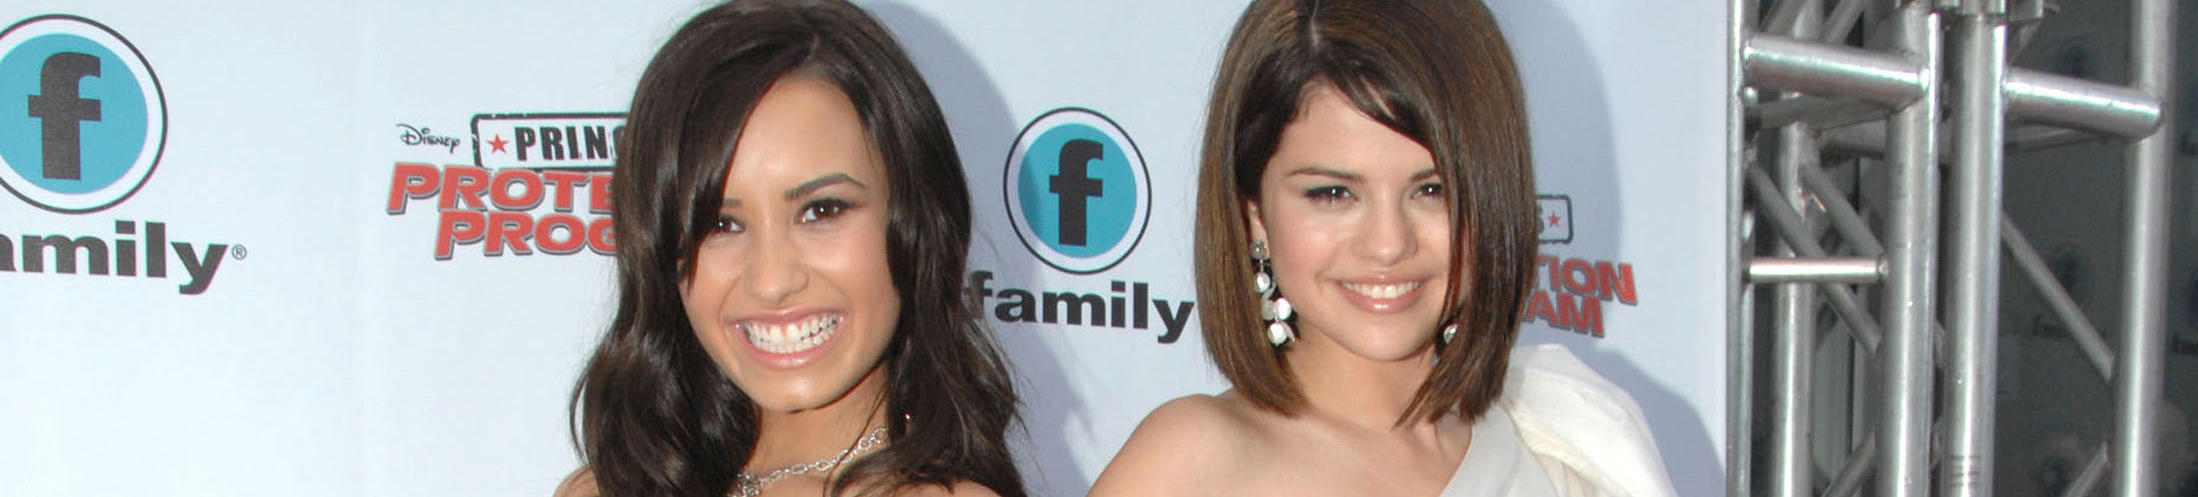 Demi Lovato and Selena Gomez smiling and posing for the camera, Demi in black dress and Selena in a white dress